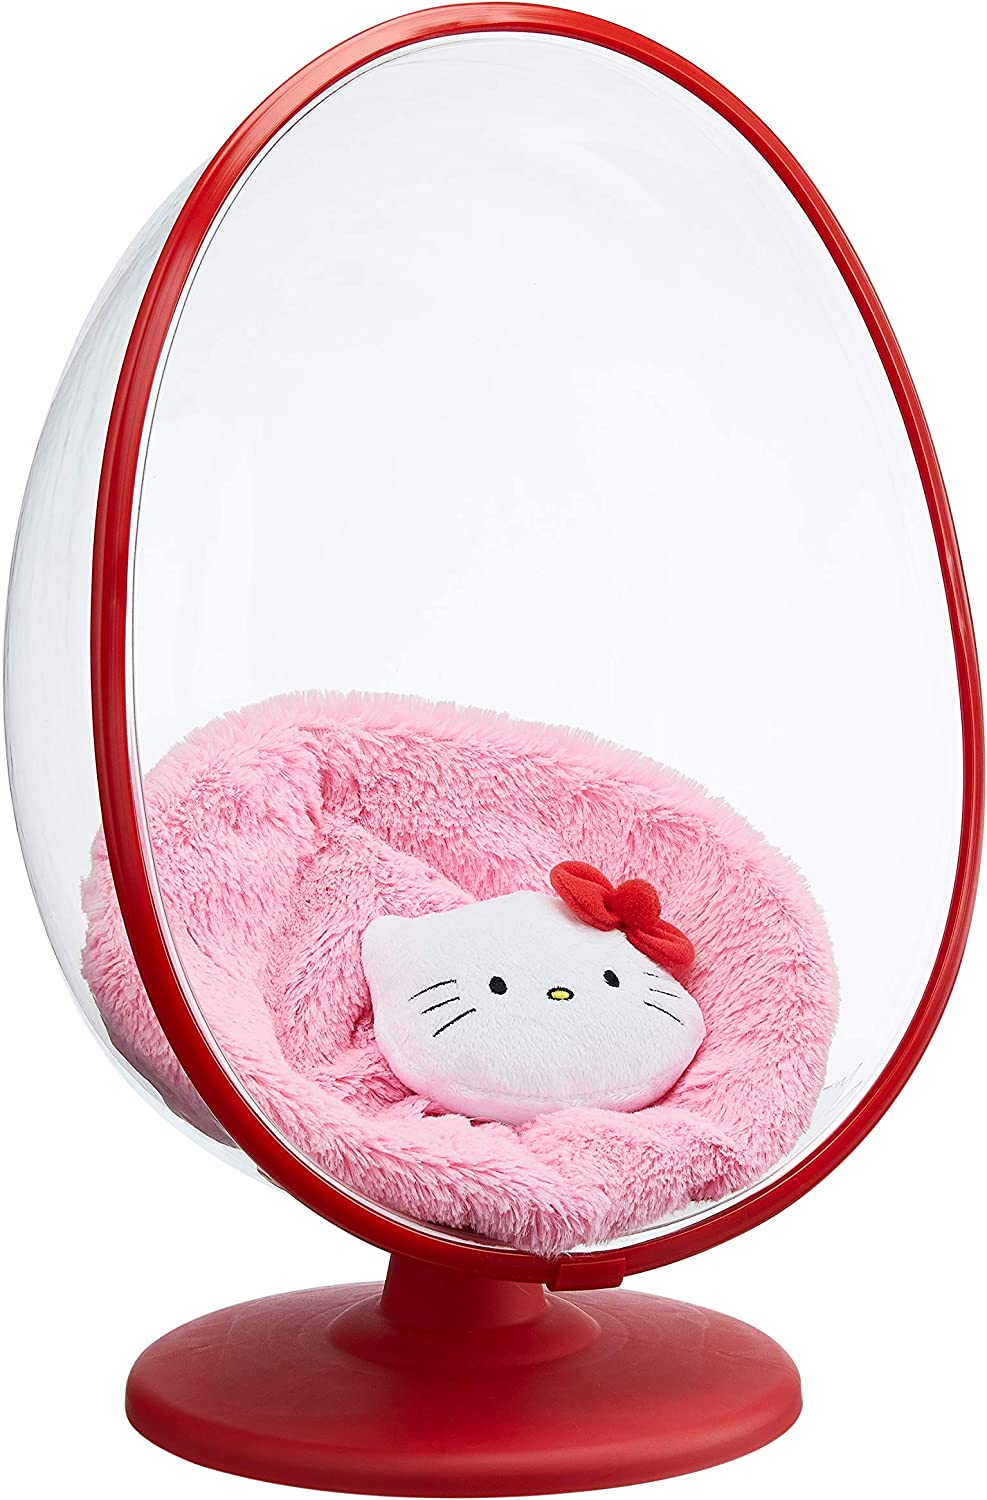 My Life Hello Kitty Egg Chair for 18